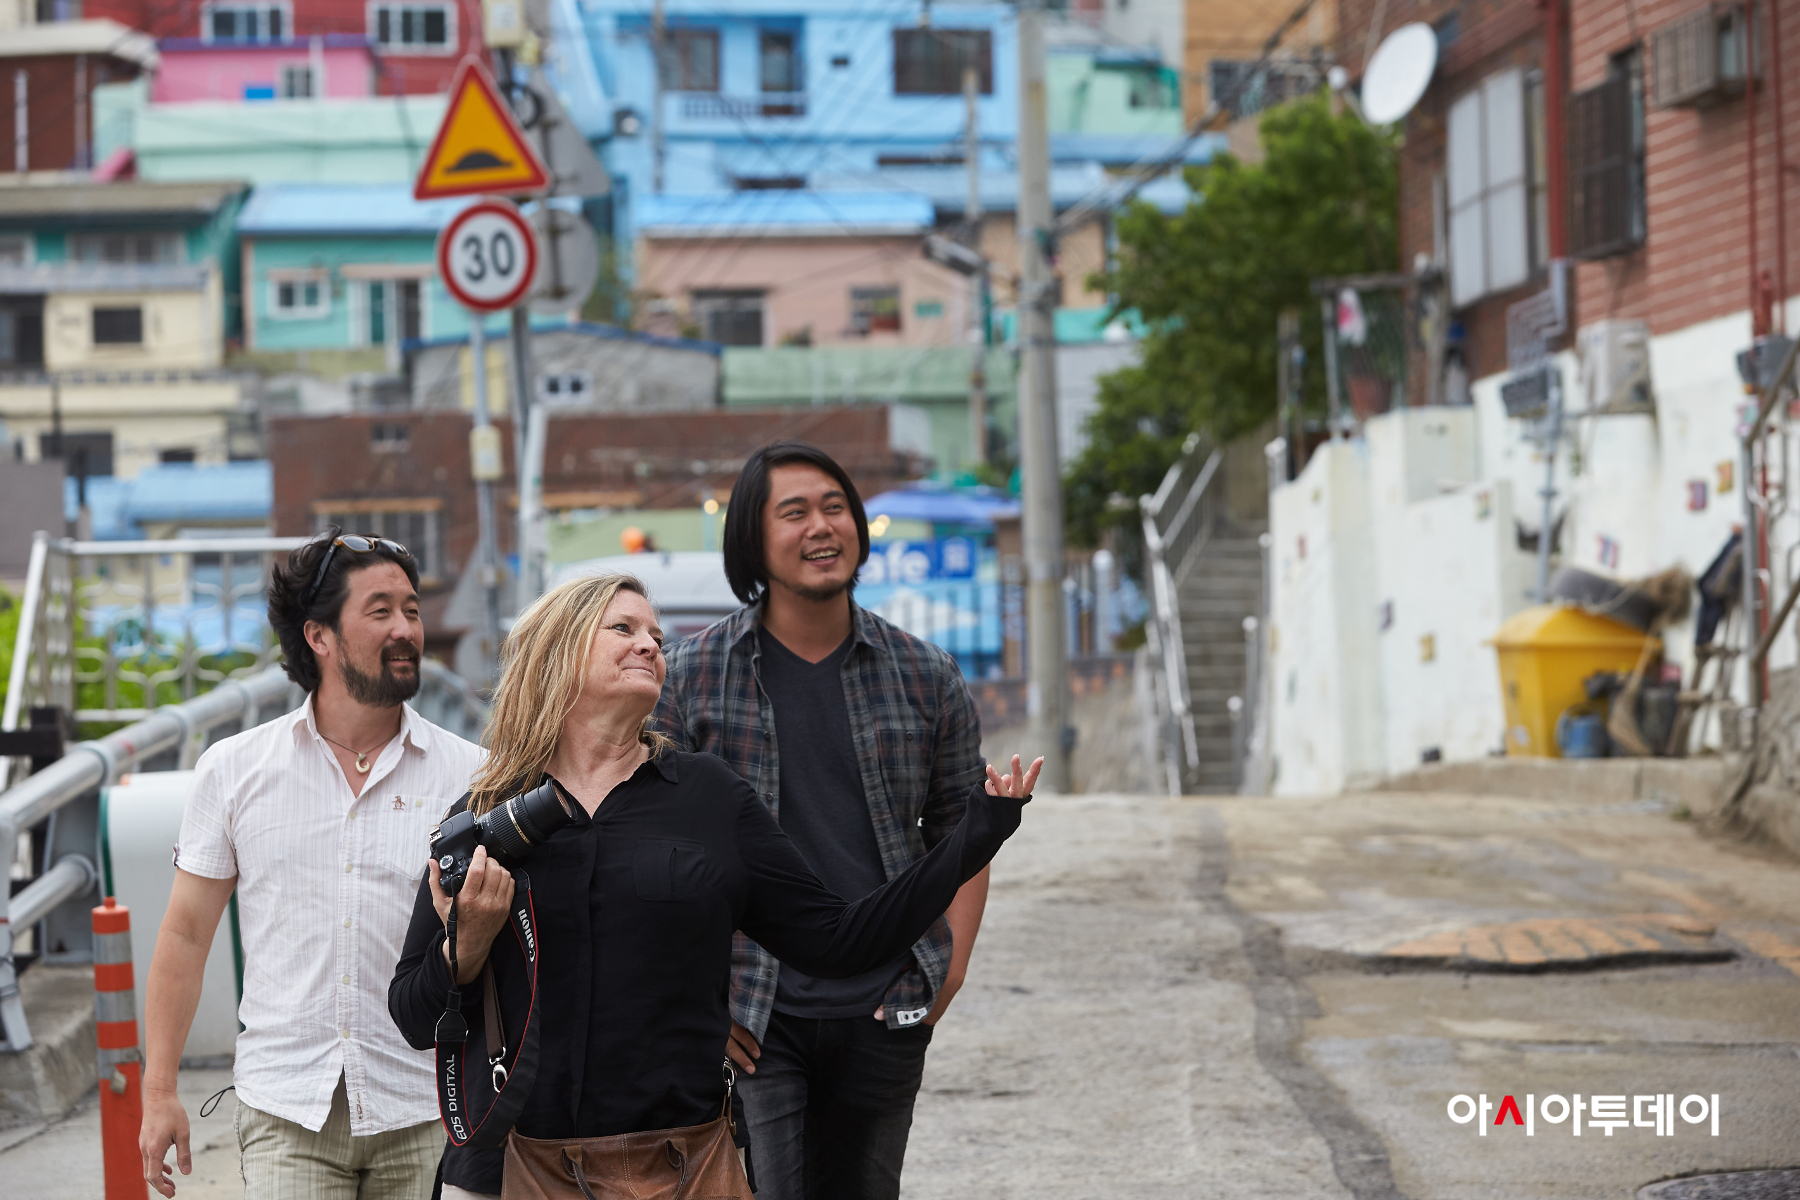 Hollywood location managers Kent Matsuoka and Becky Brake join Korean location manager Seon Kwon Hwang to scout the Gamcheon Culture Village in Busan - June 2017